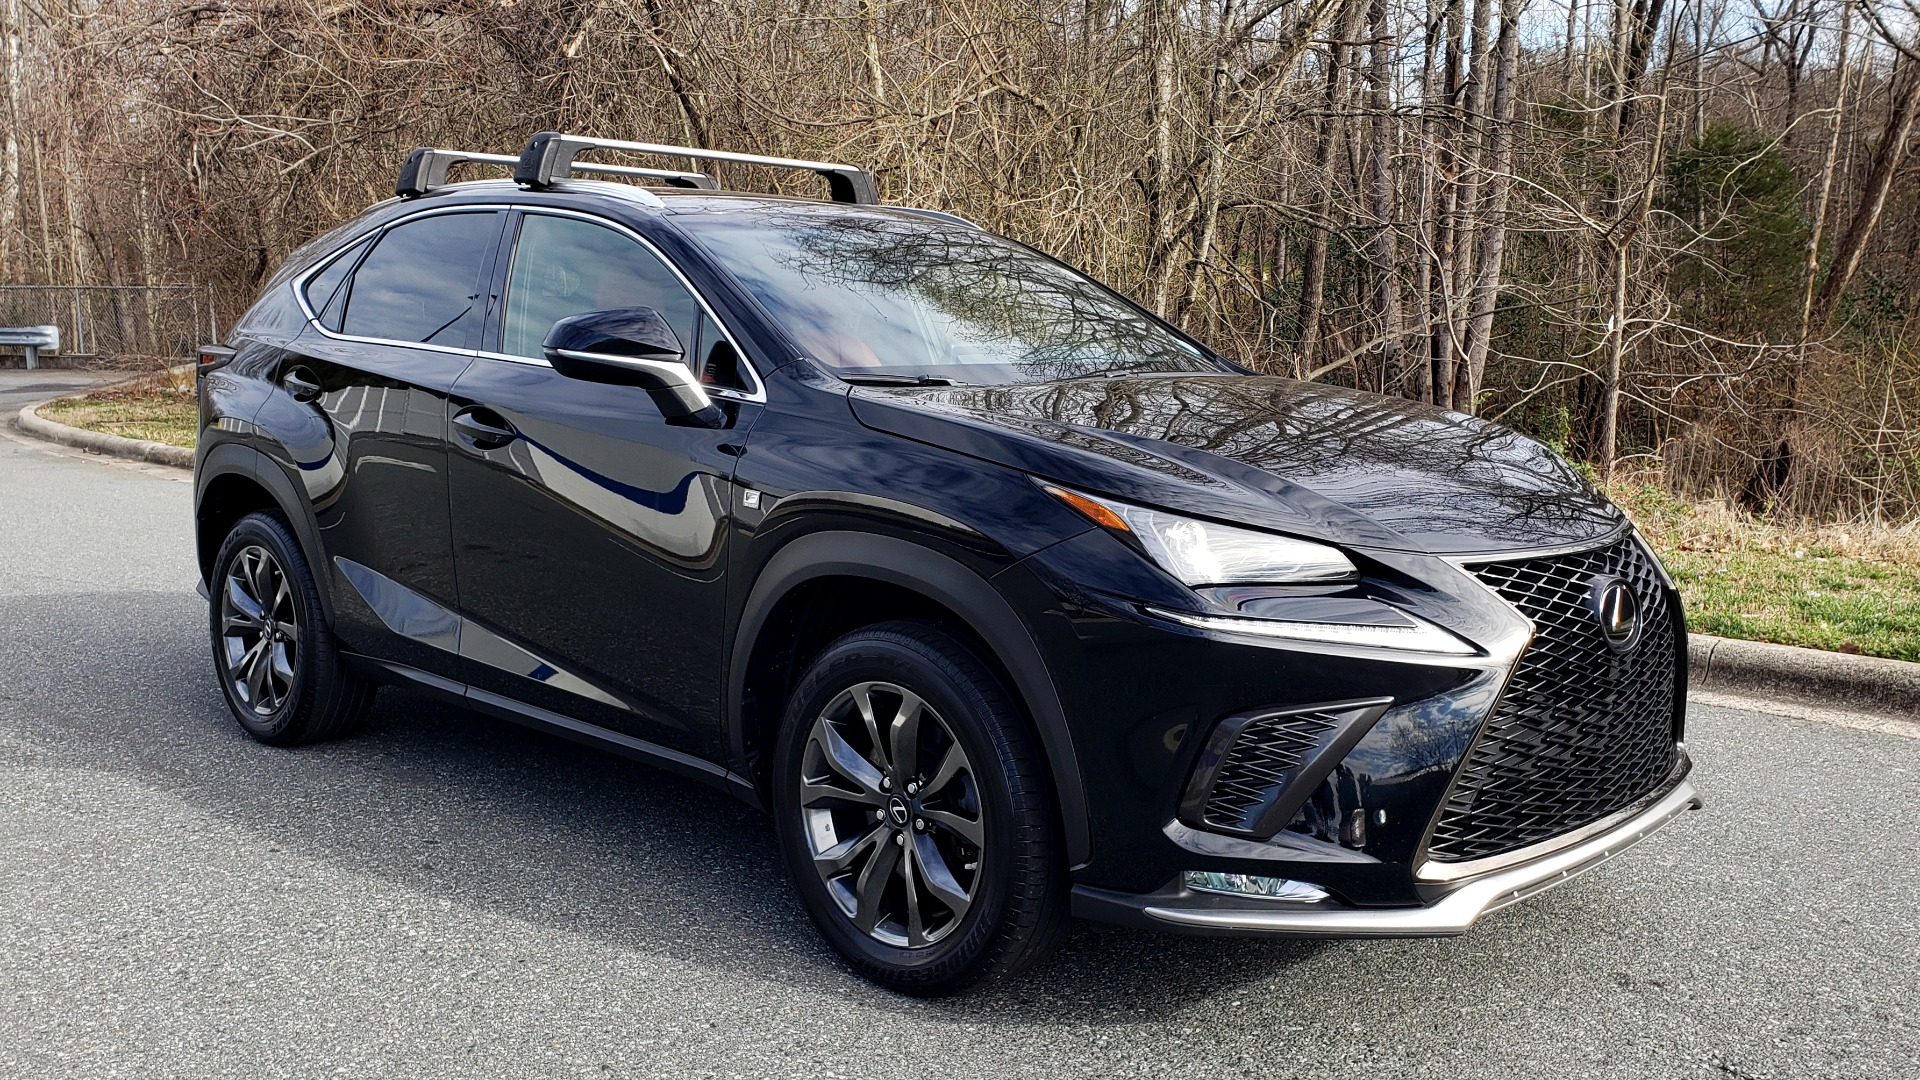 Used 2018 Lexus NX 300 F-SPORT / LEATHER / ACCY PKG / 18IN WHEELS for sale Sold at Formula Imports in Charlotte NC 28227 4